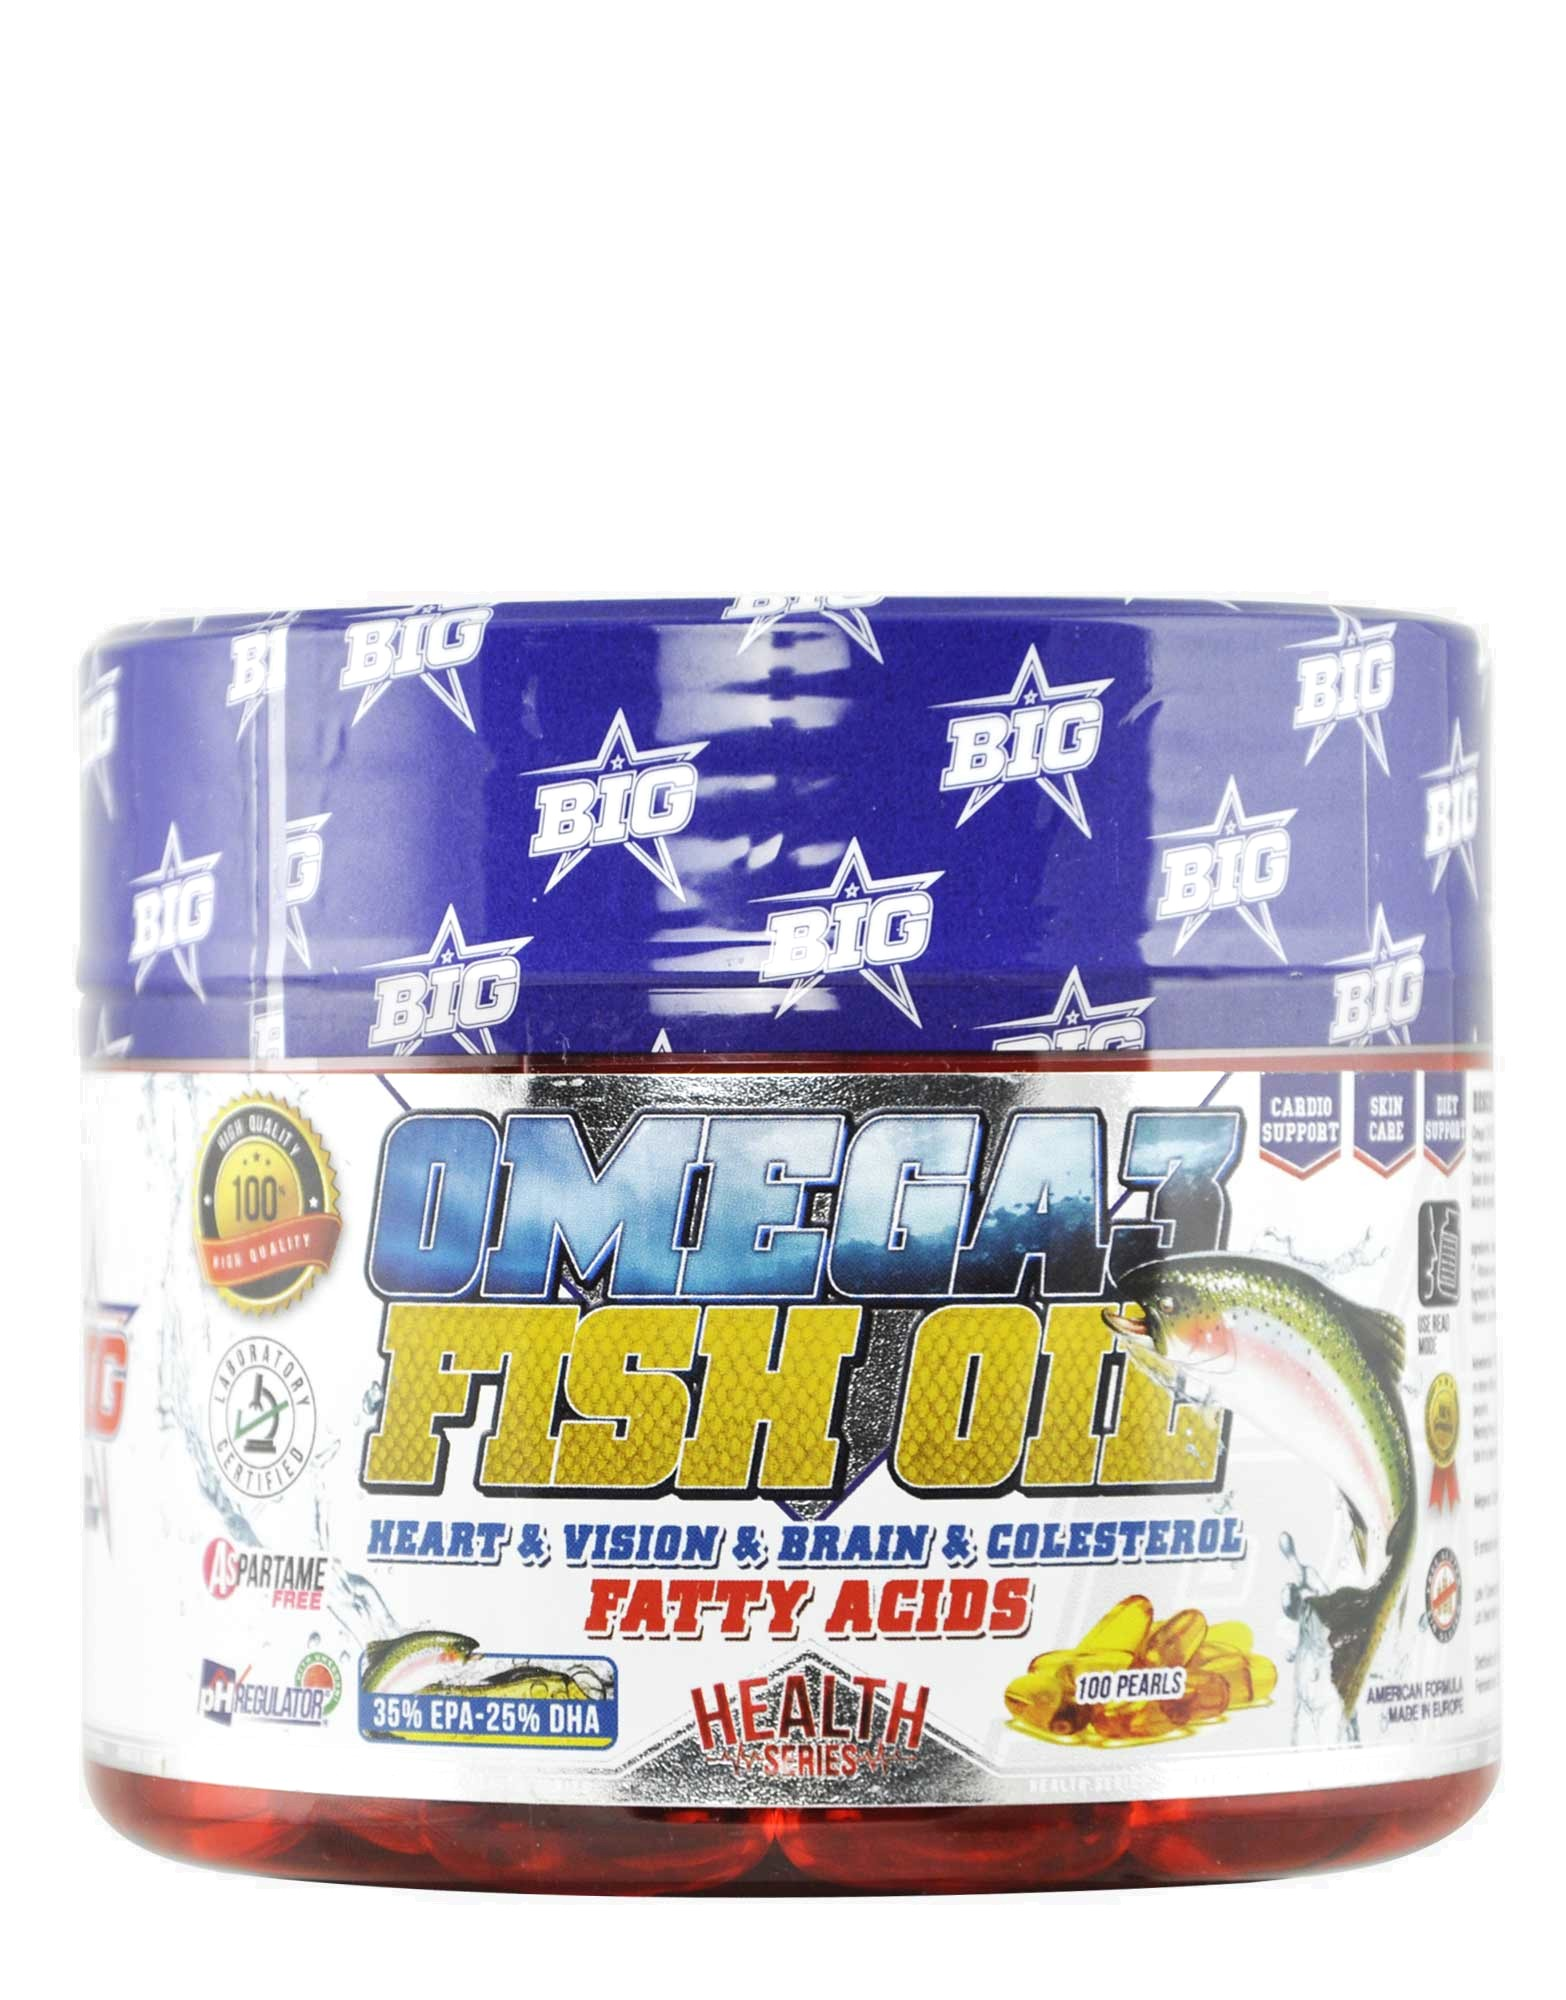 Big omega 3 fish oil by universal mcgregor 100 pearls for Fish oil pearls